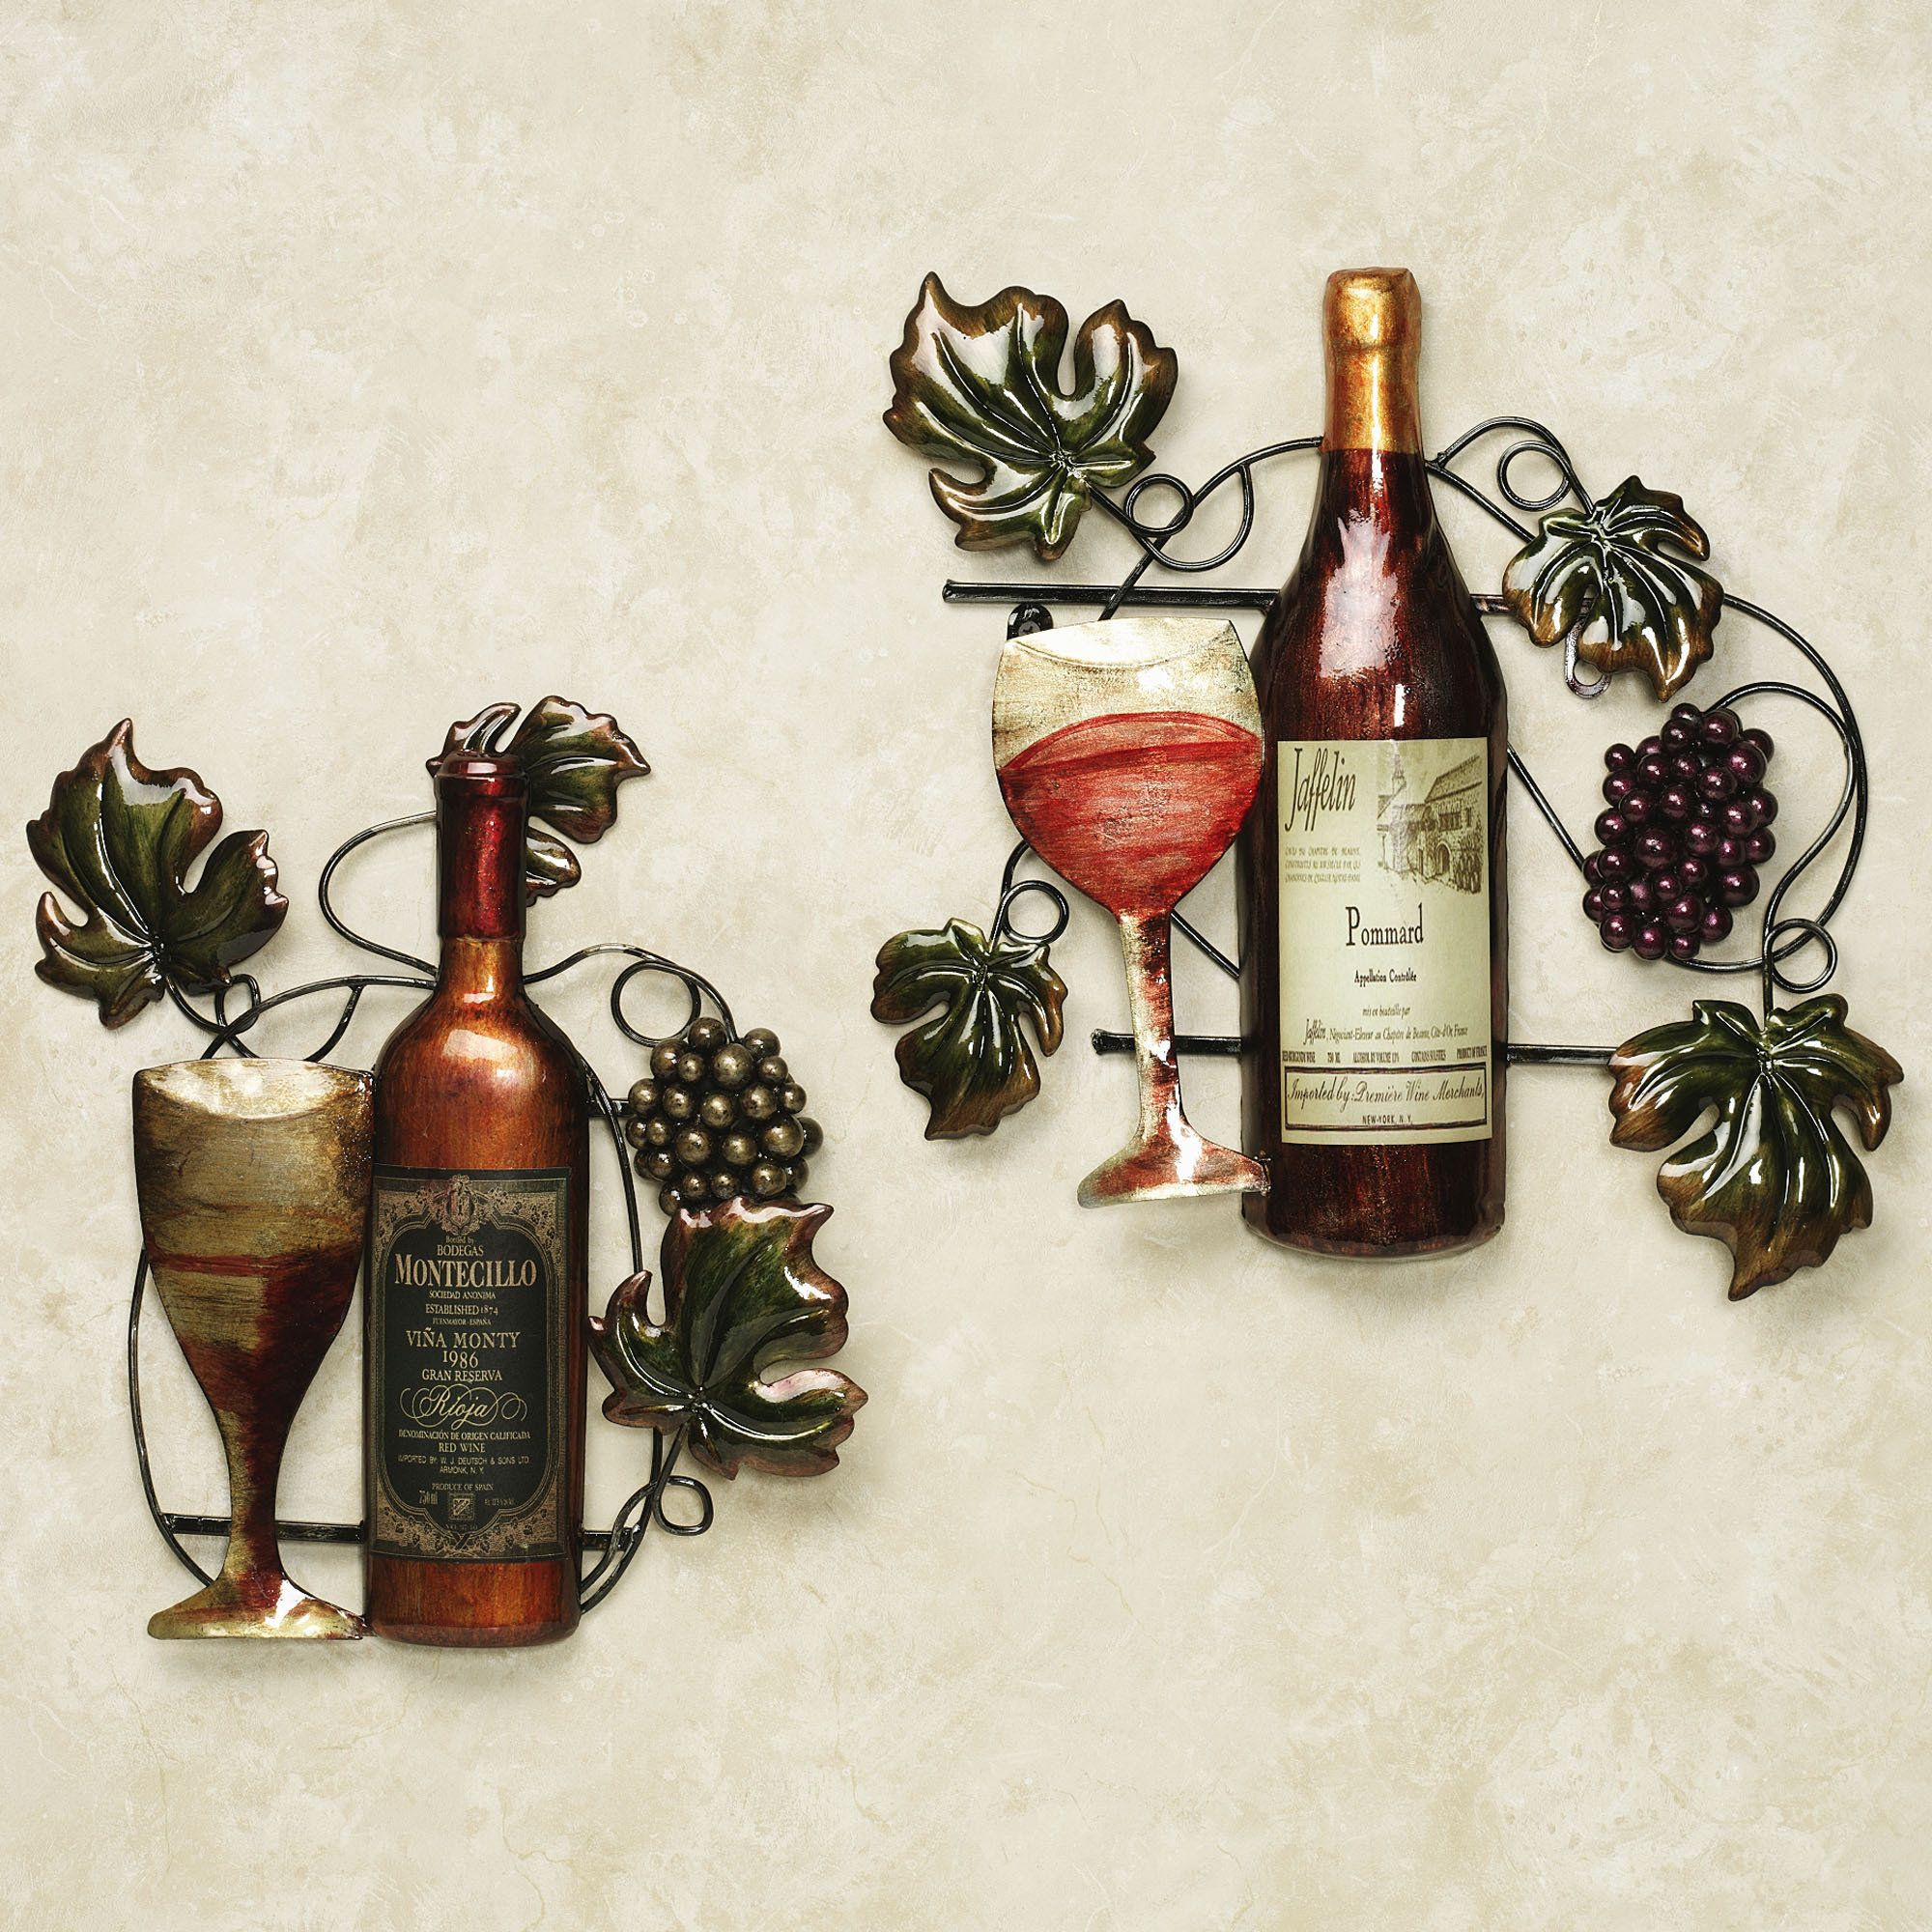 Metal wall decor for kitchen - Grape Kitchen Decor Sets Wine Bottle Metal Wall Decor Set From Touch Of Class Wine Download